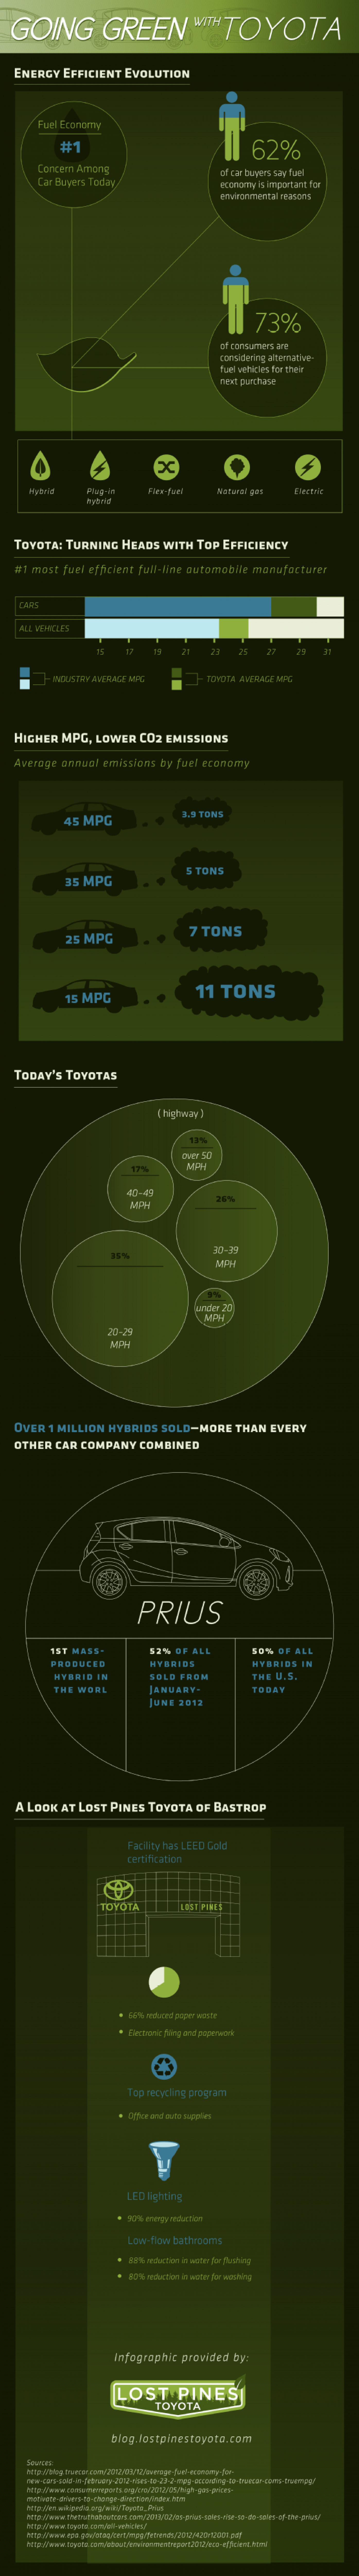 Going Green With Toyota Infographic